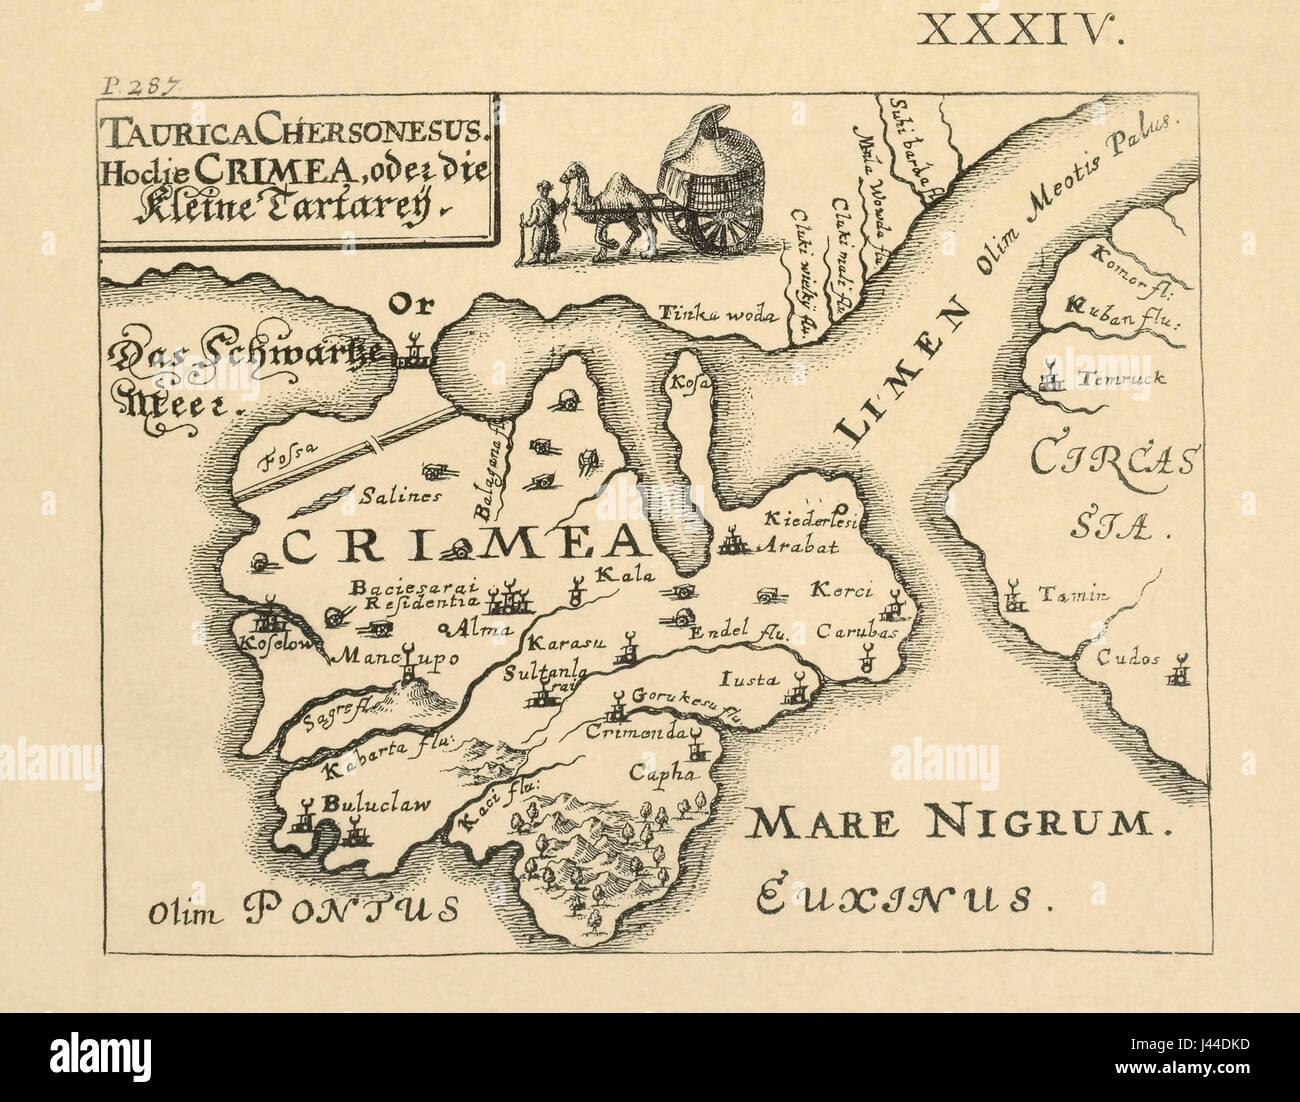 Map of Crimea published in Kiev, 1899. - Stock Image